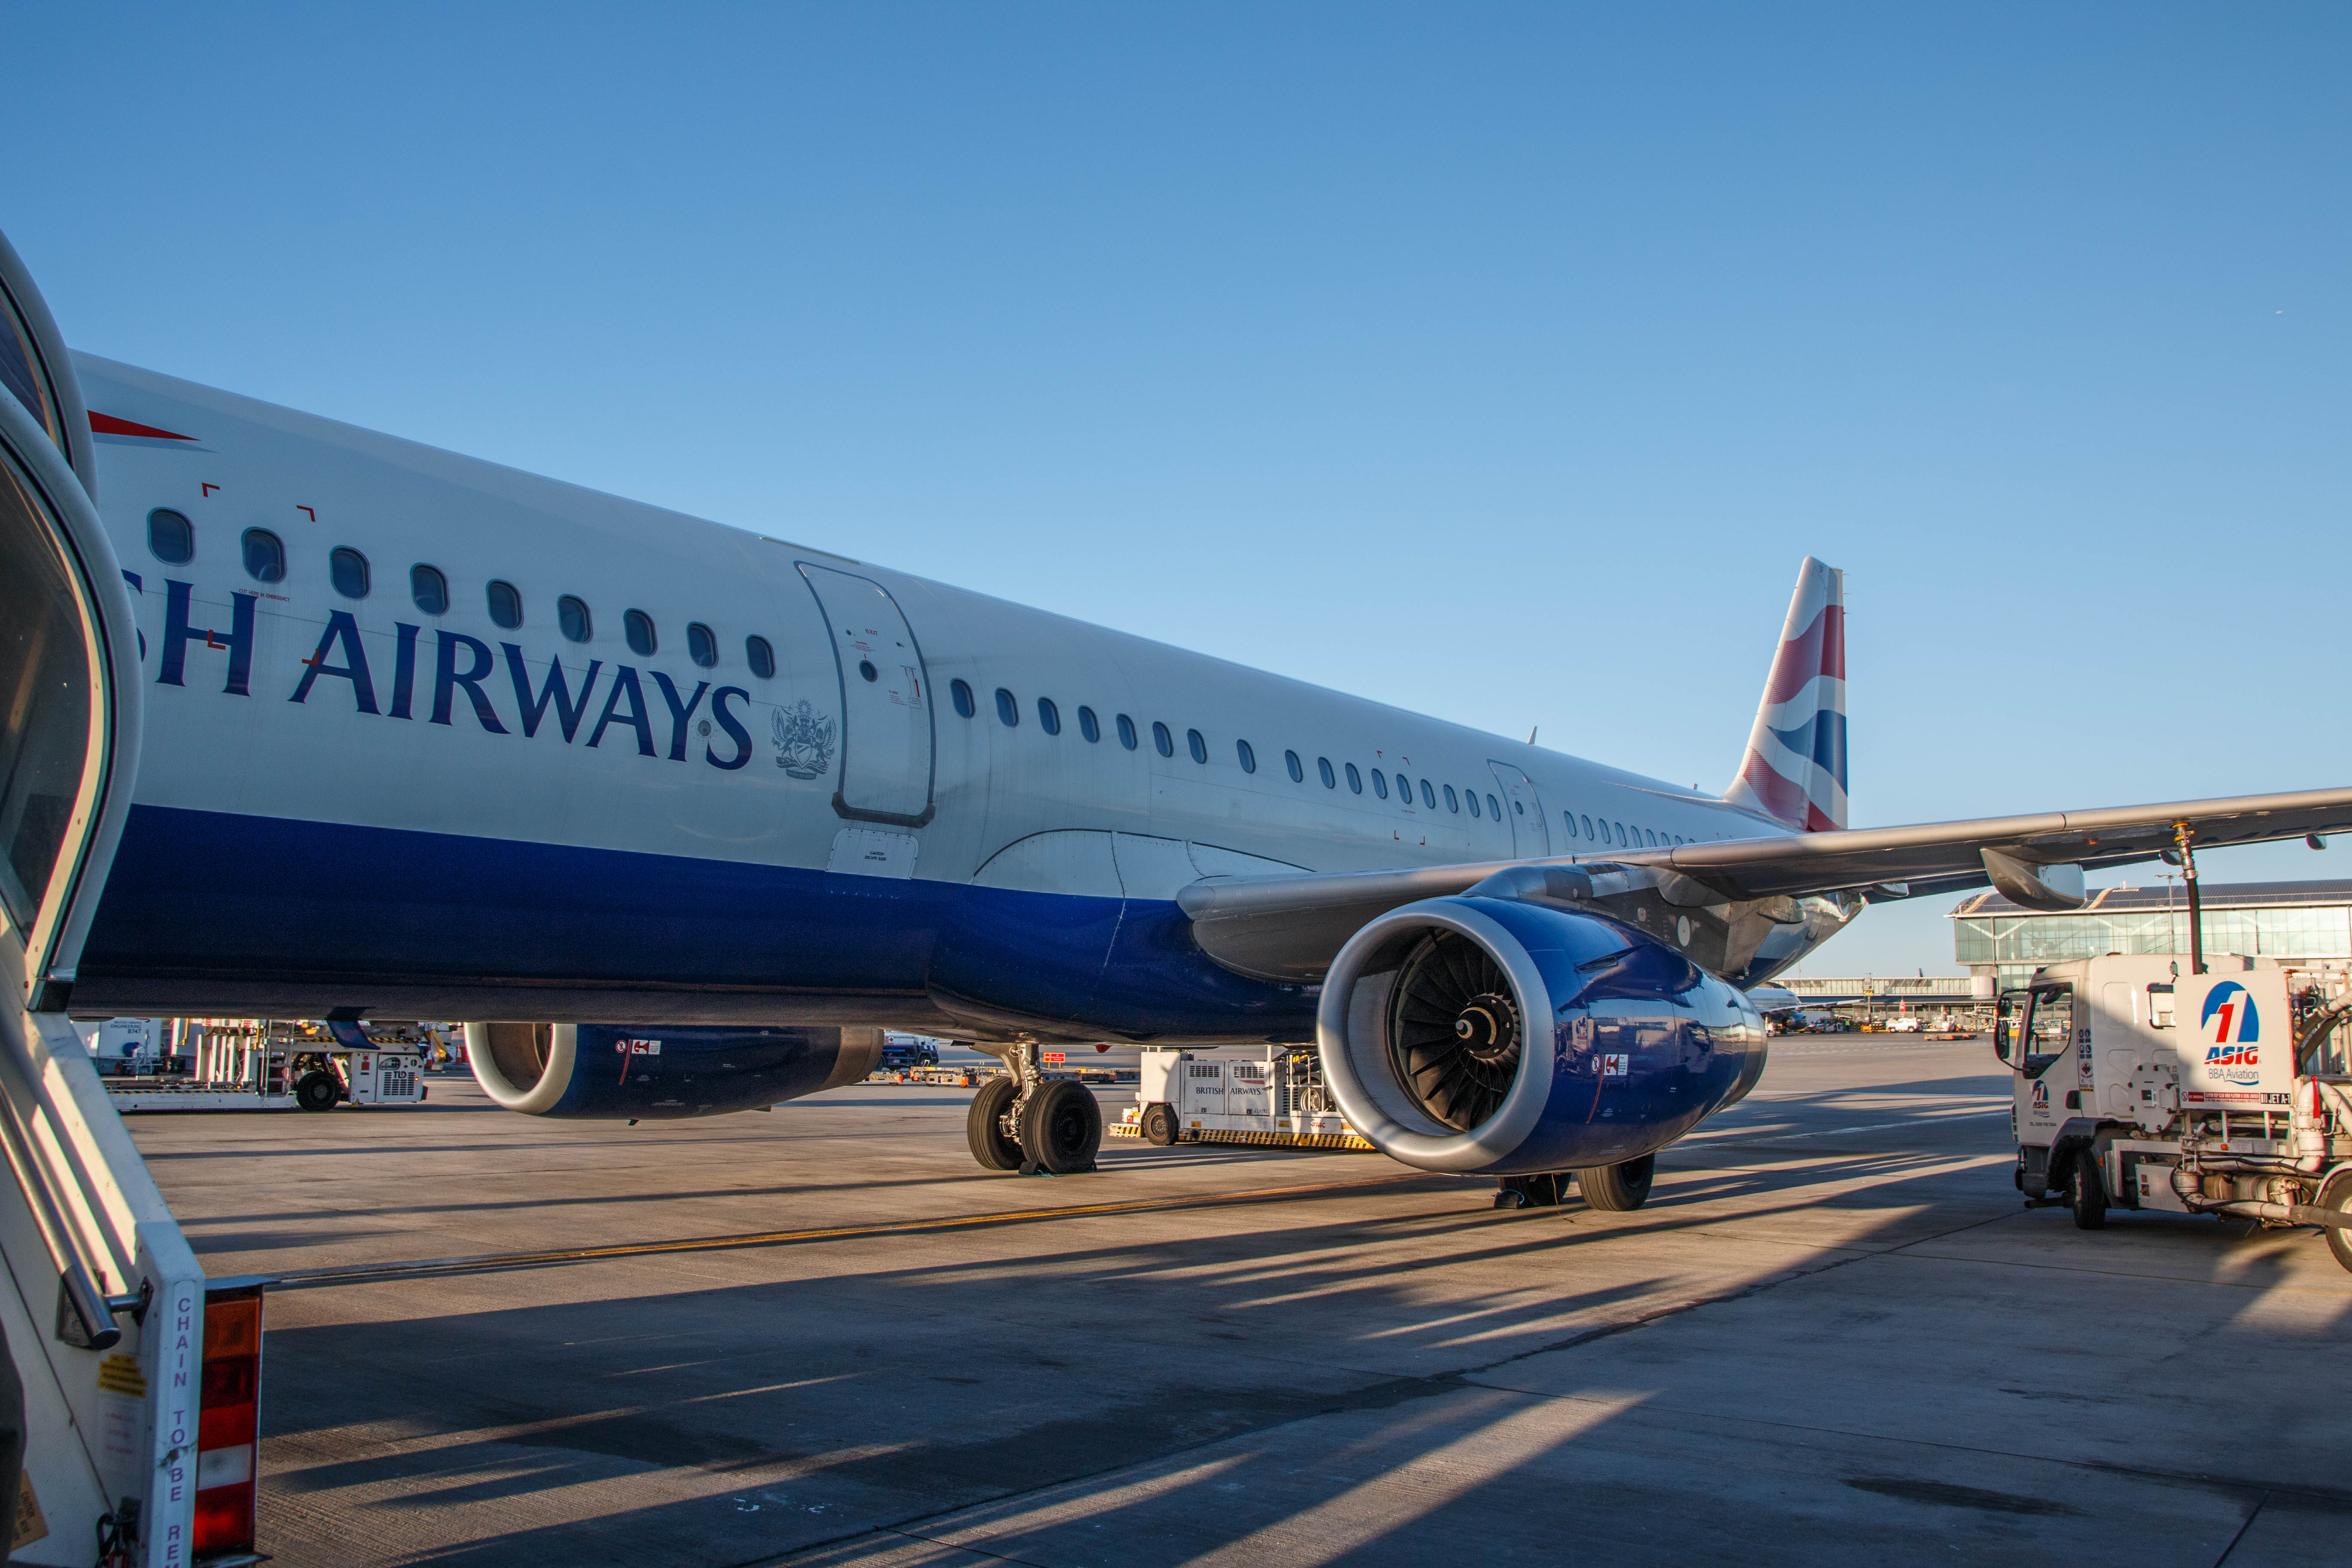 British Airways Business Class A321